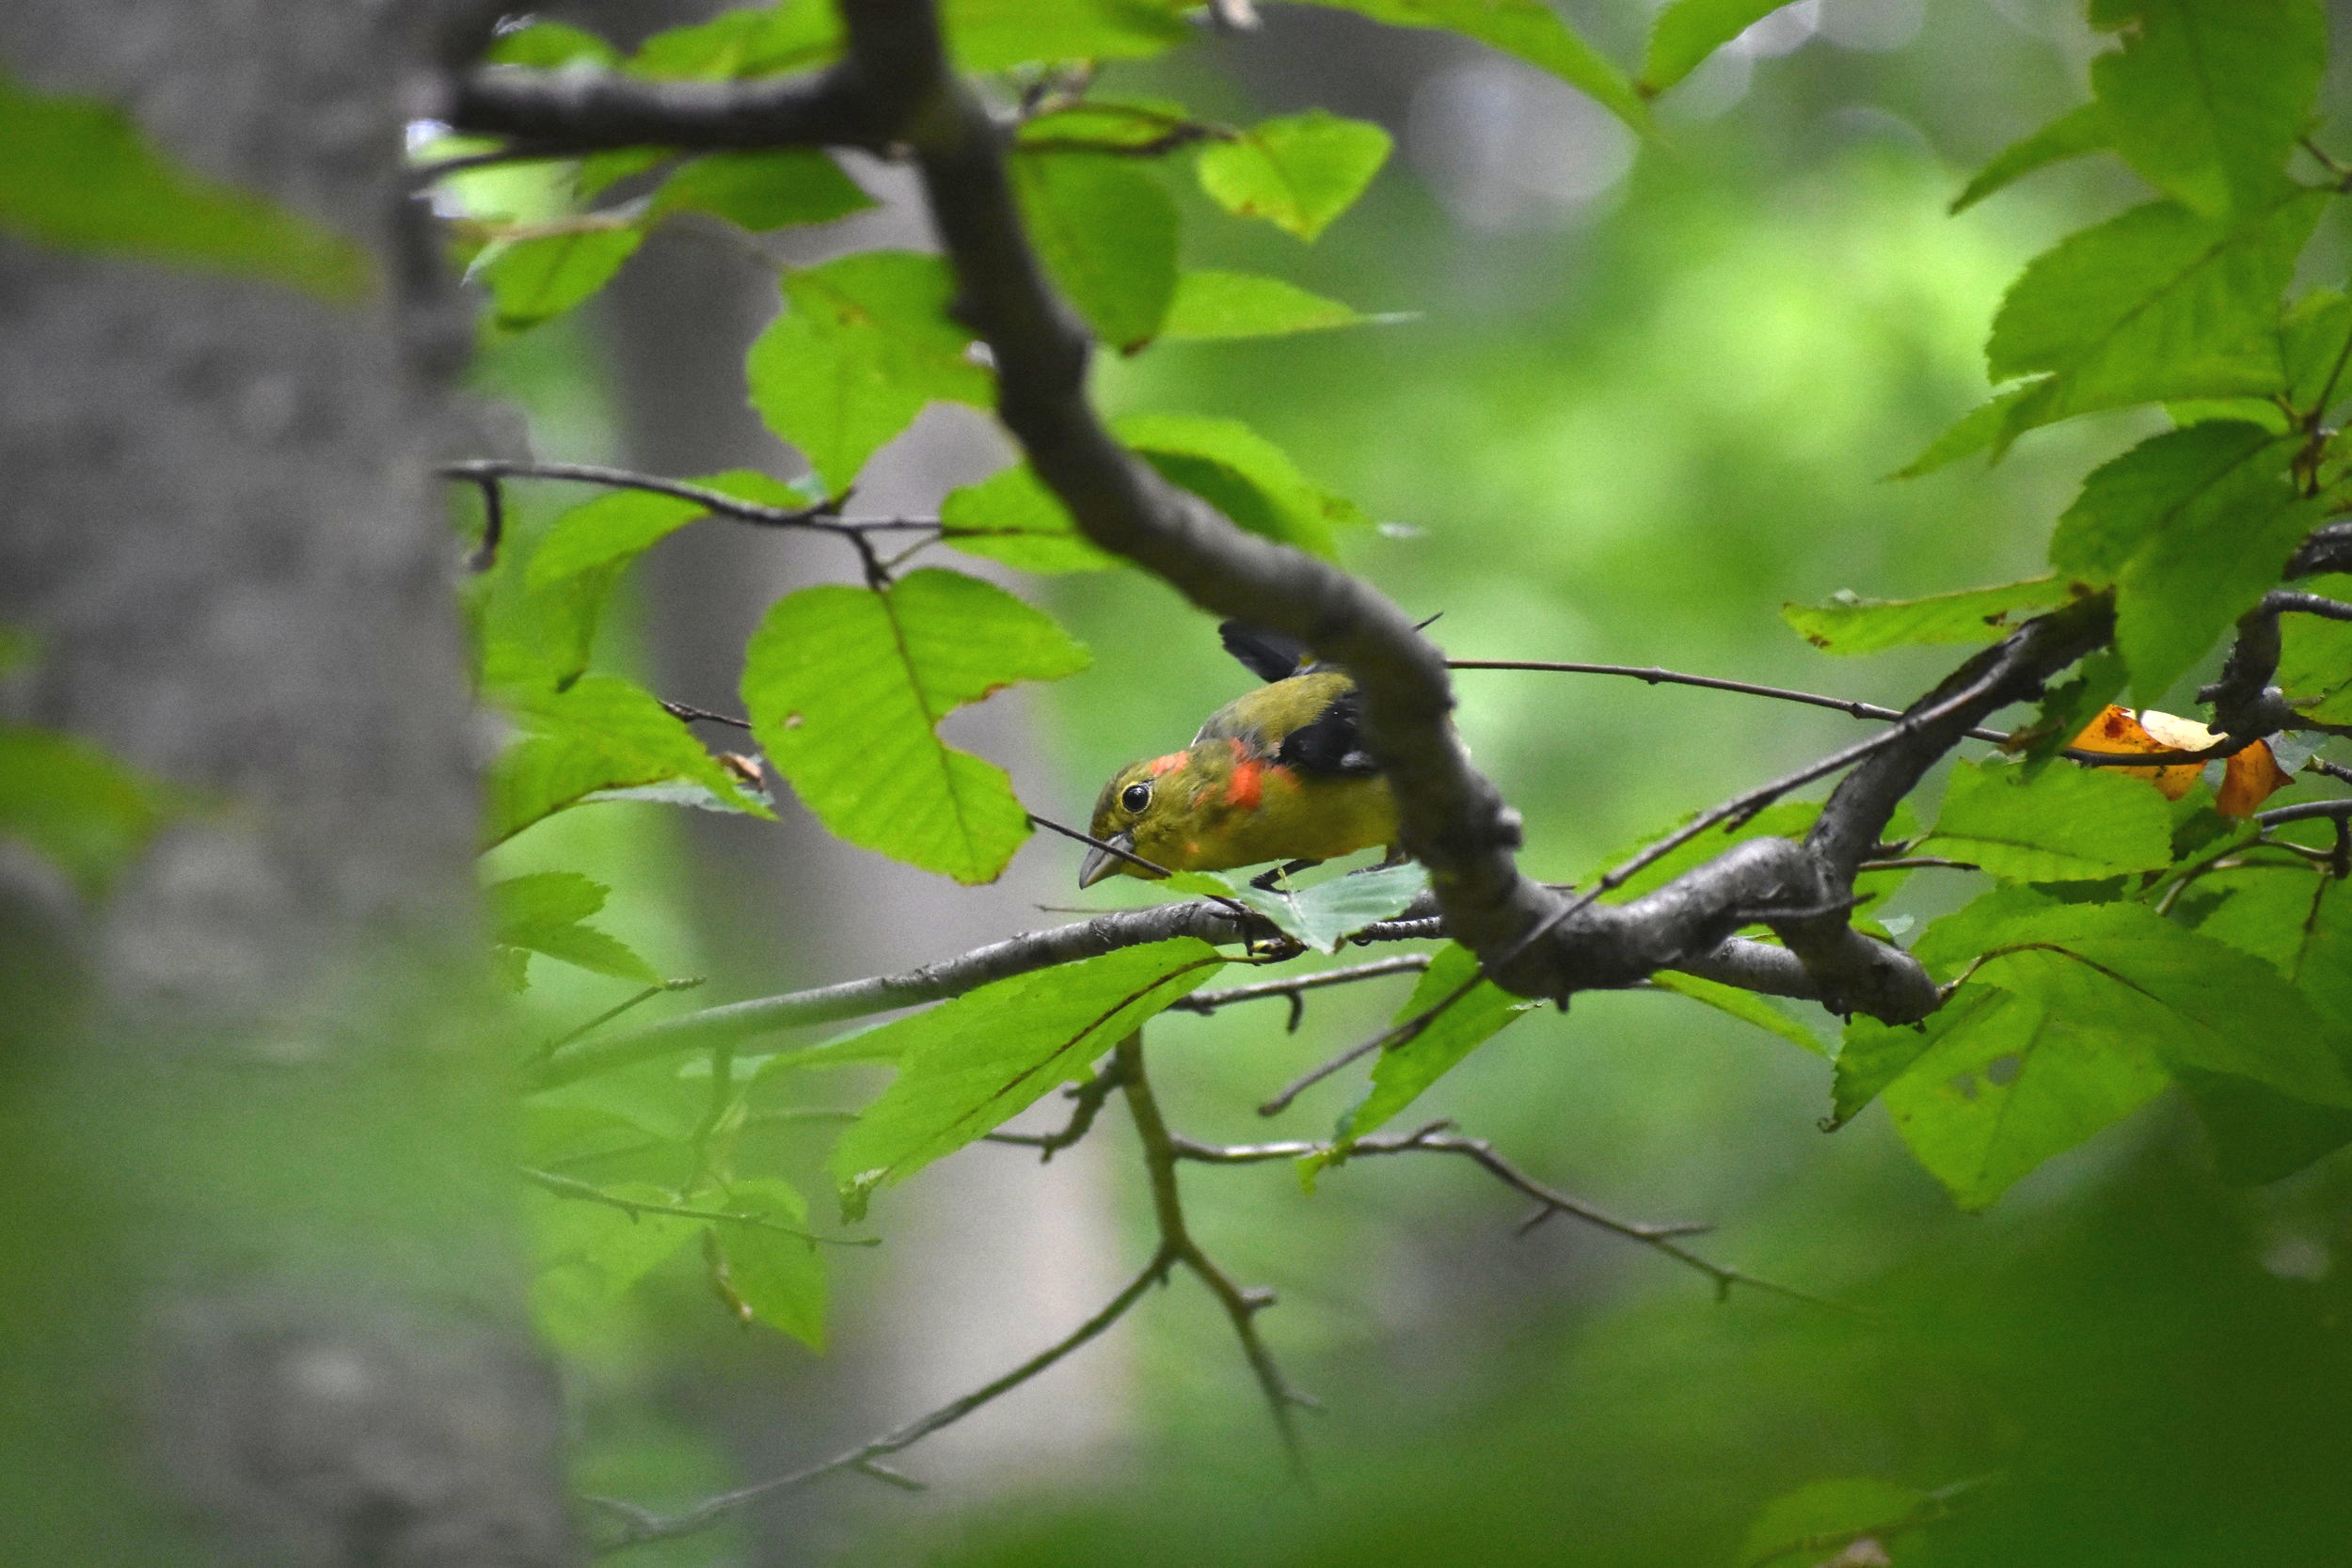 Motling Scarlet Tanager - note hints of scarlet color near neck and head